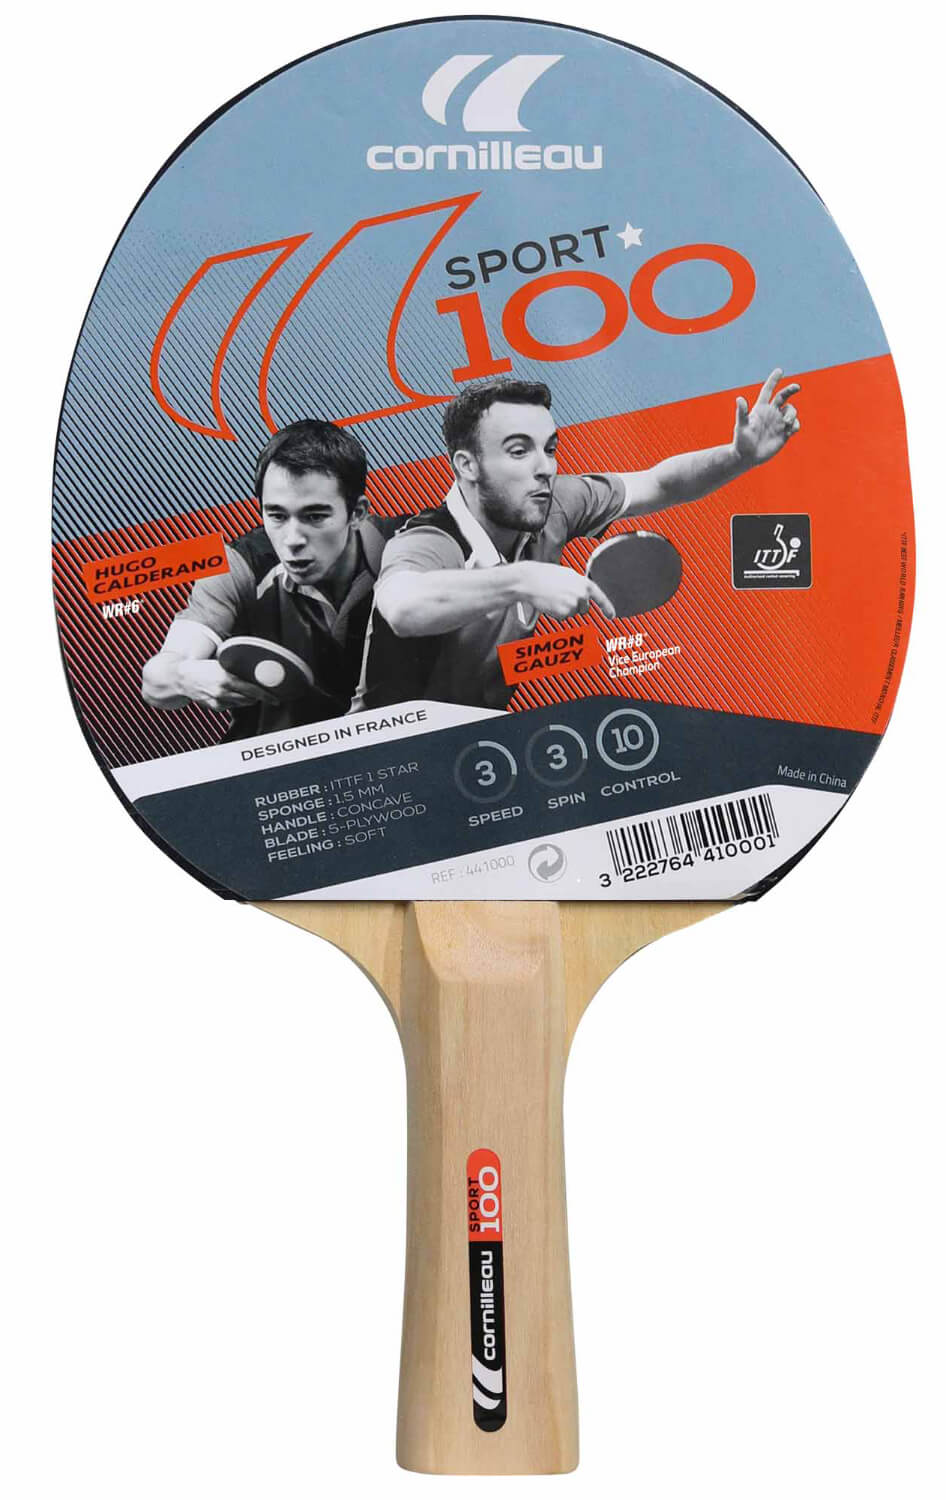 cornilleau sport 100 table tennis bat liberty games